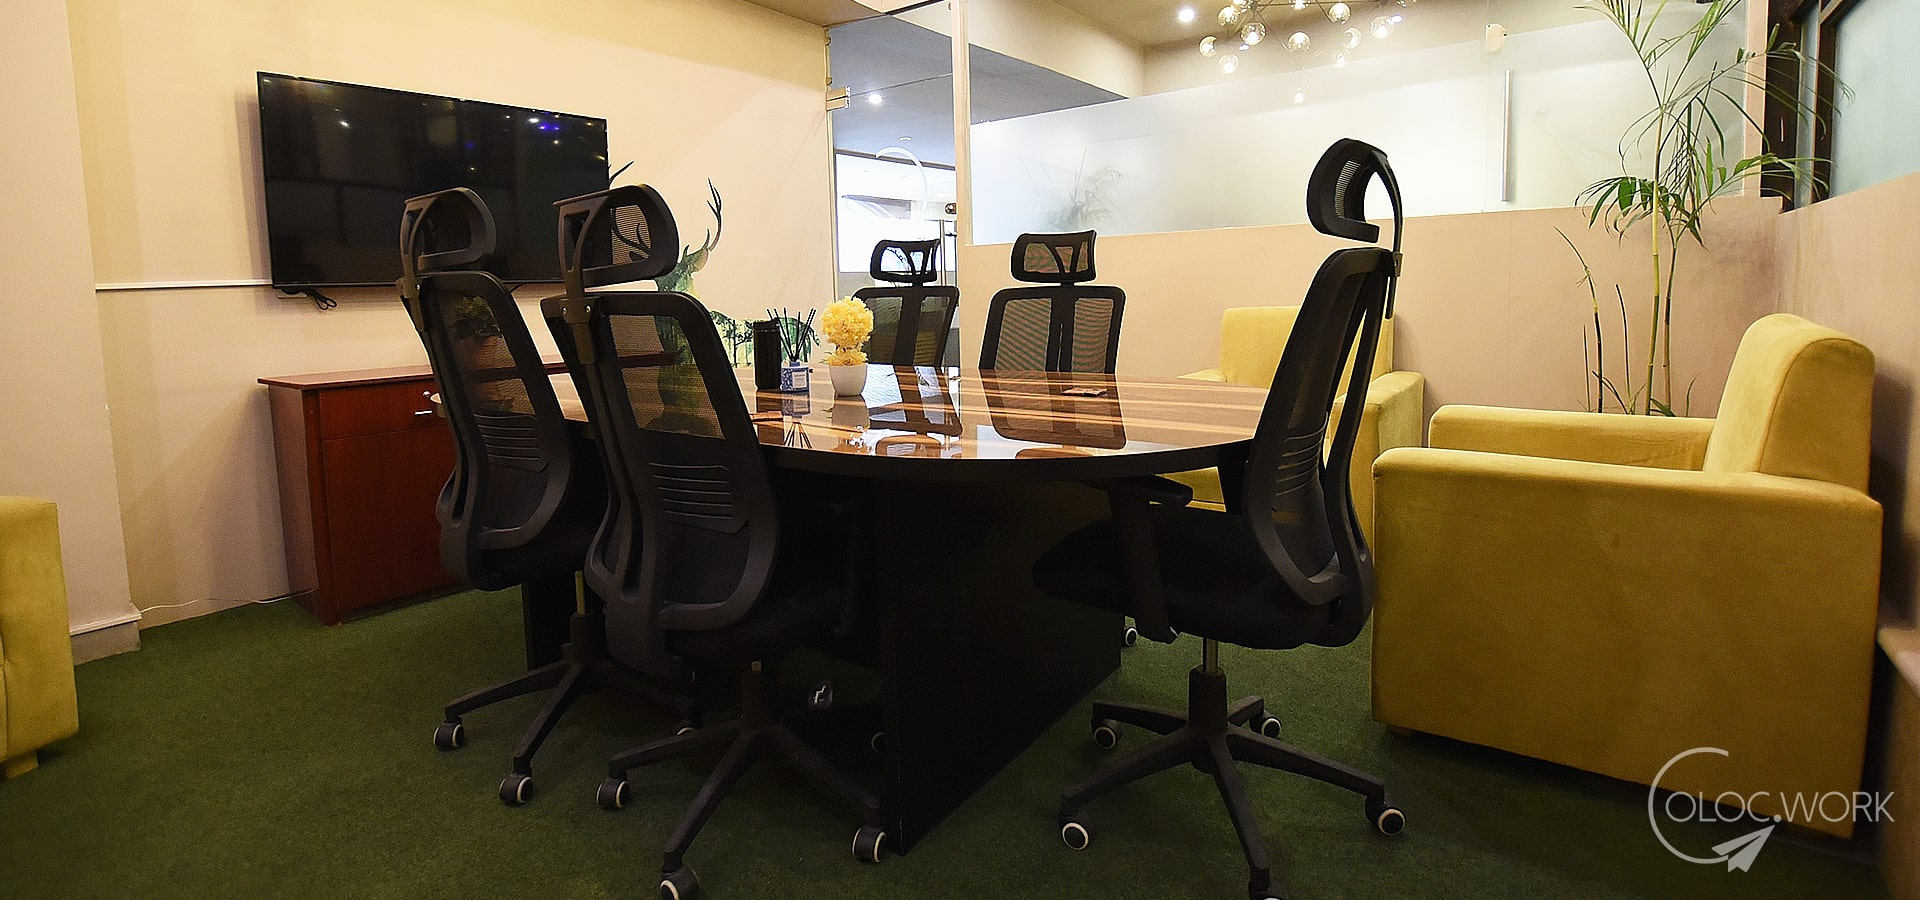 coworking space images